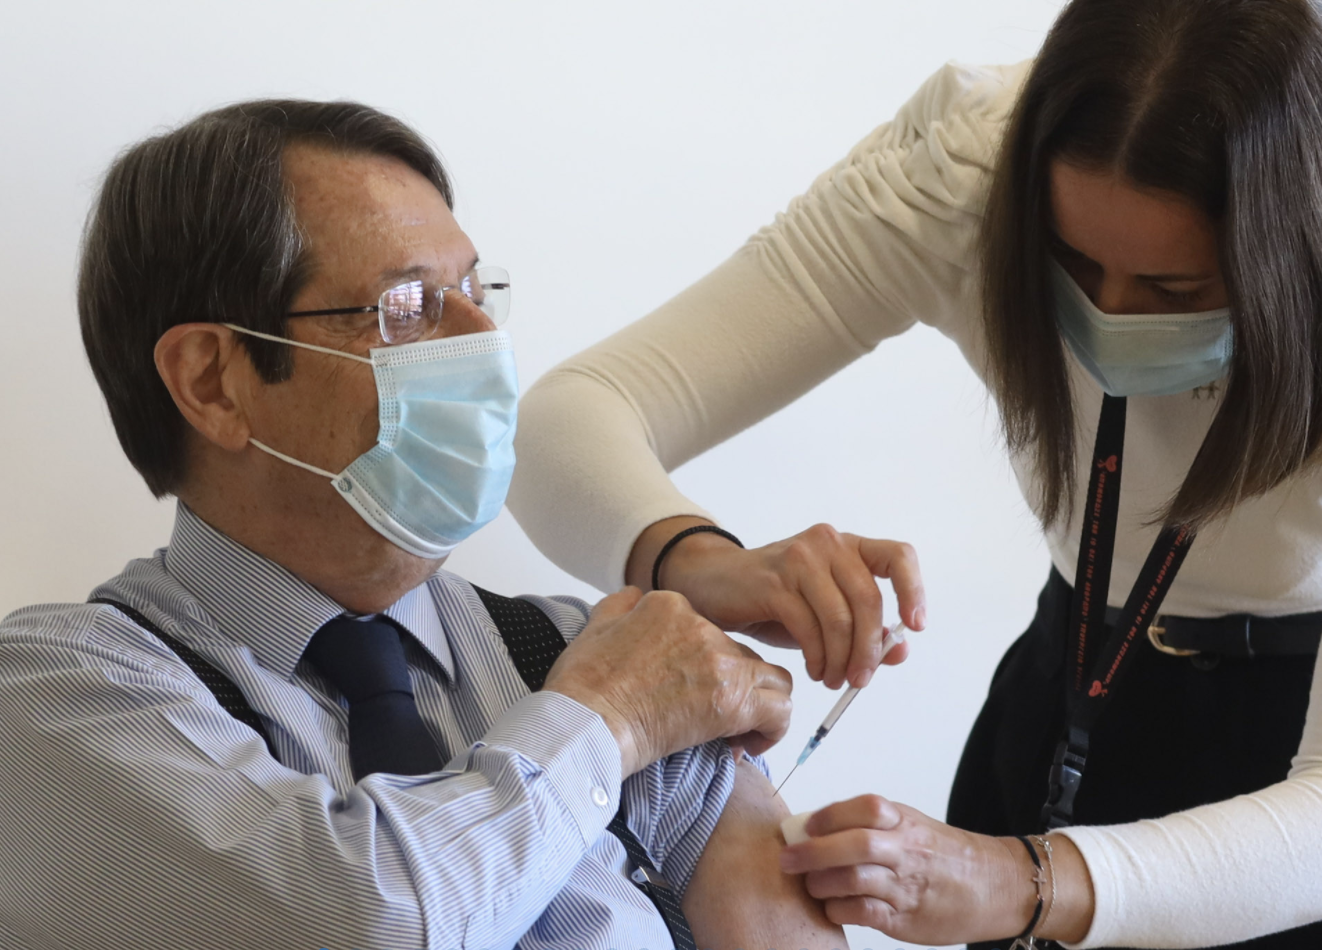 Cyprus: Anastasiades sents message of patience, courage and hope, after receiving the second dose of the vaccine